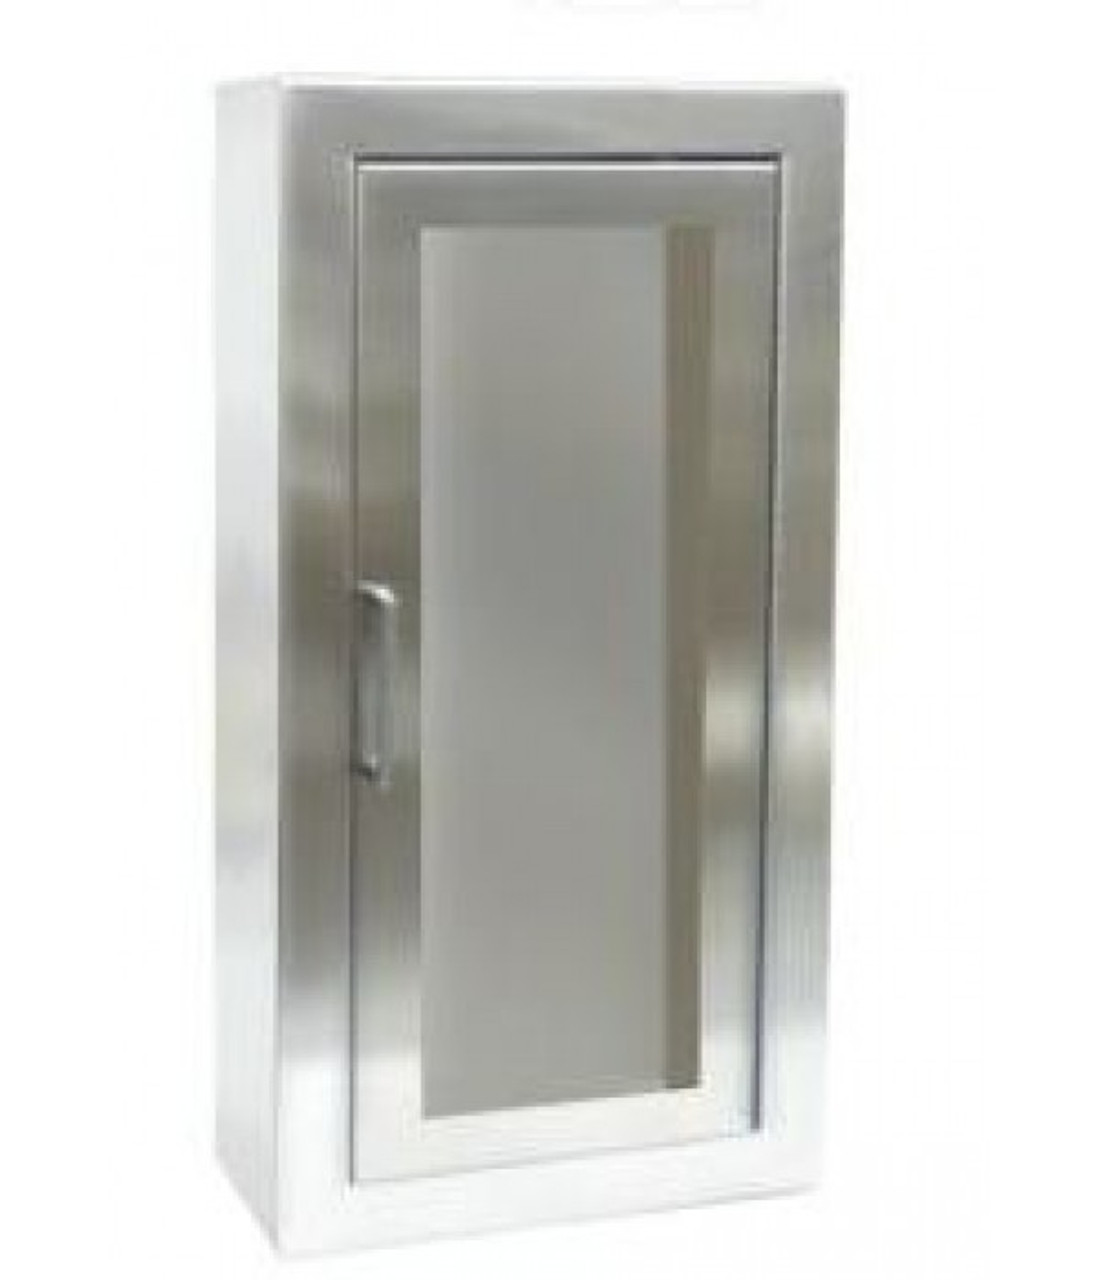 1033F10 - Stainless Steel Surface Mounted Cabinet